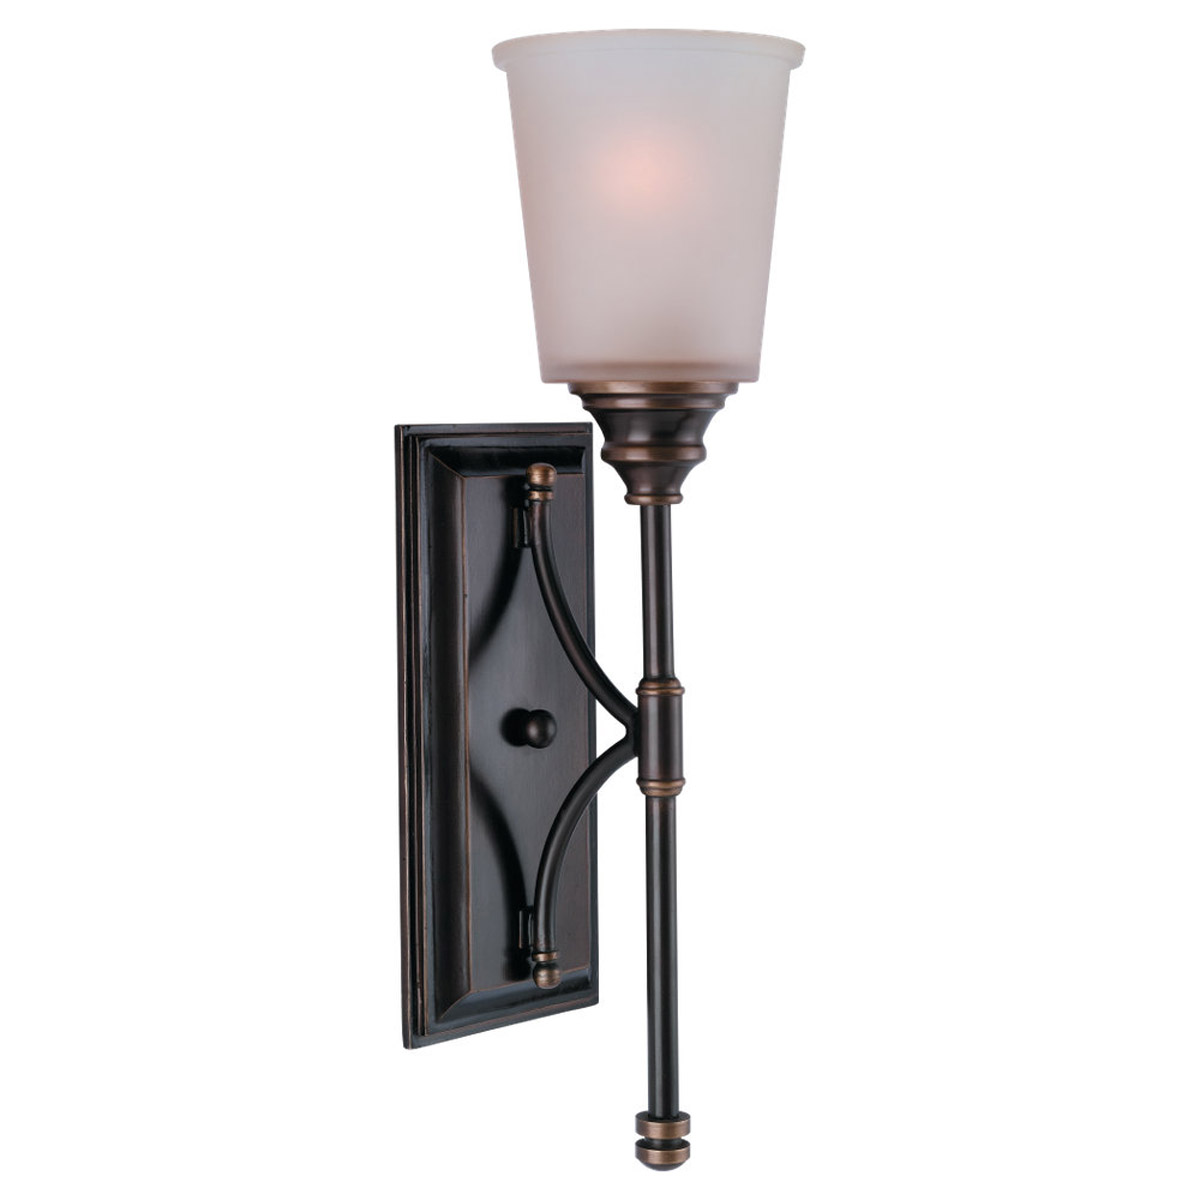 Sea Gull Lighting Warwick 1 Light Bath Vanity in Vintage Bronze 41330-825 photo